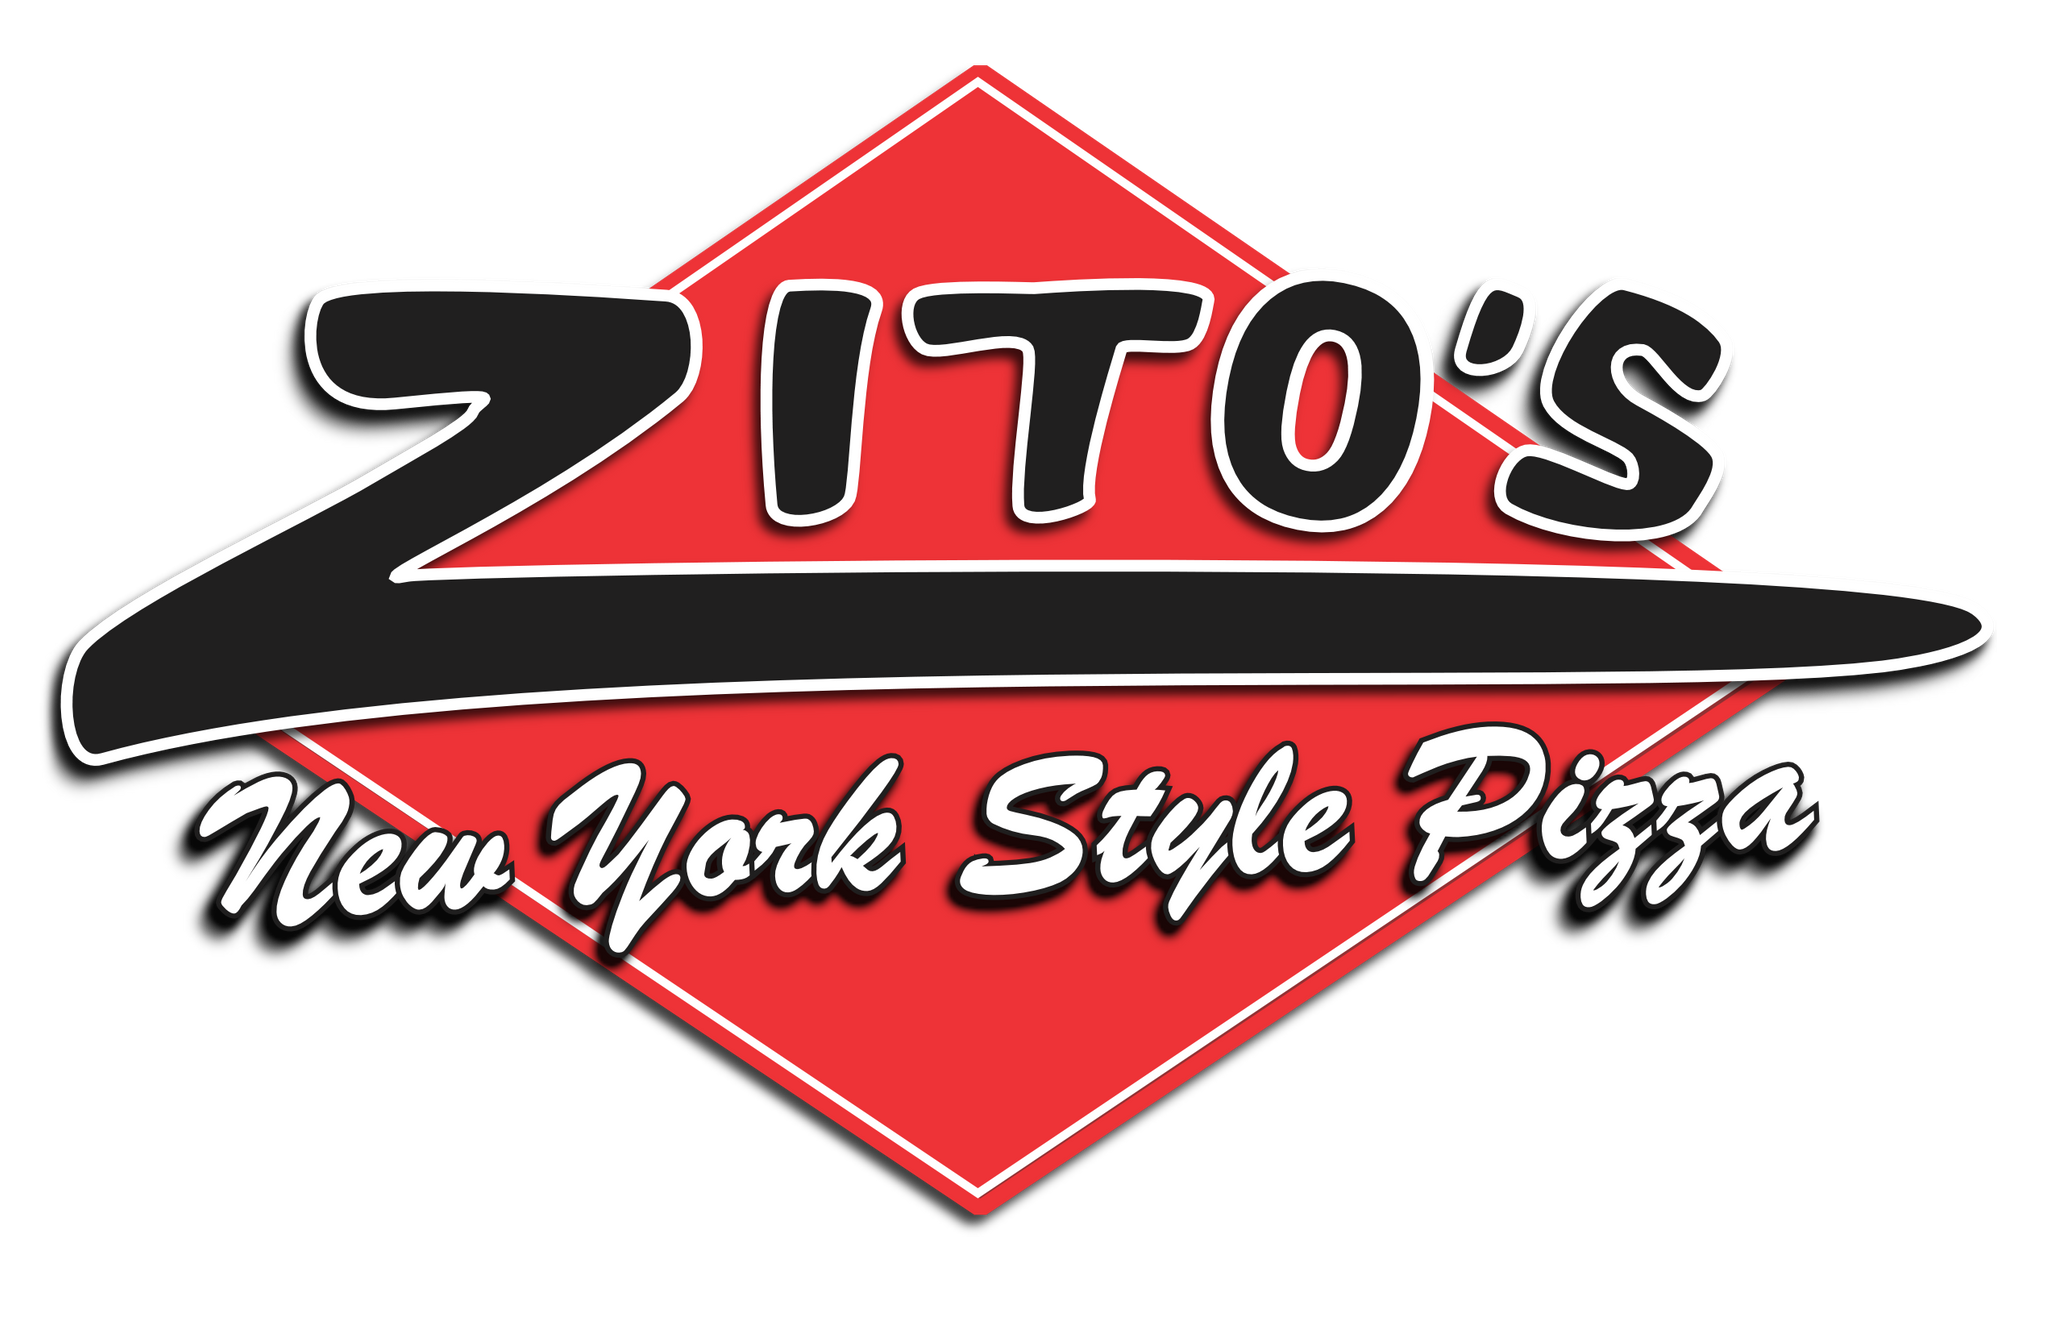 Zito's Pizza | Best Pizza in Orange County for 30 Years